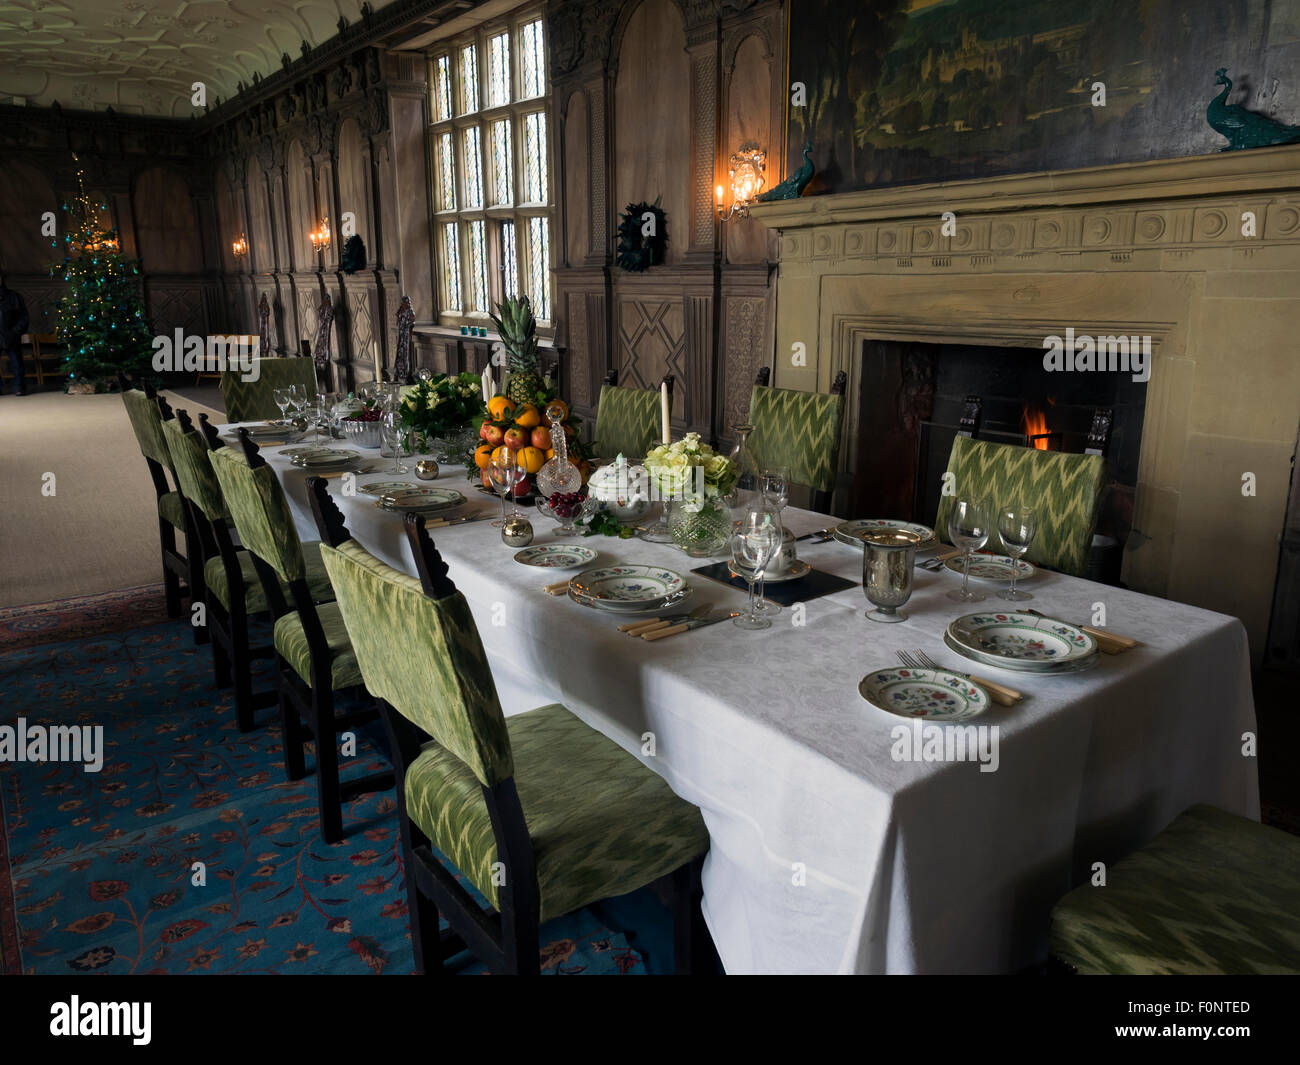 Tudor Christmas in Haddon Hall in Derbyshire Peak District England - Stock Image